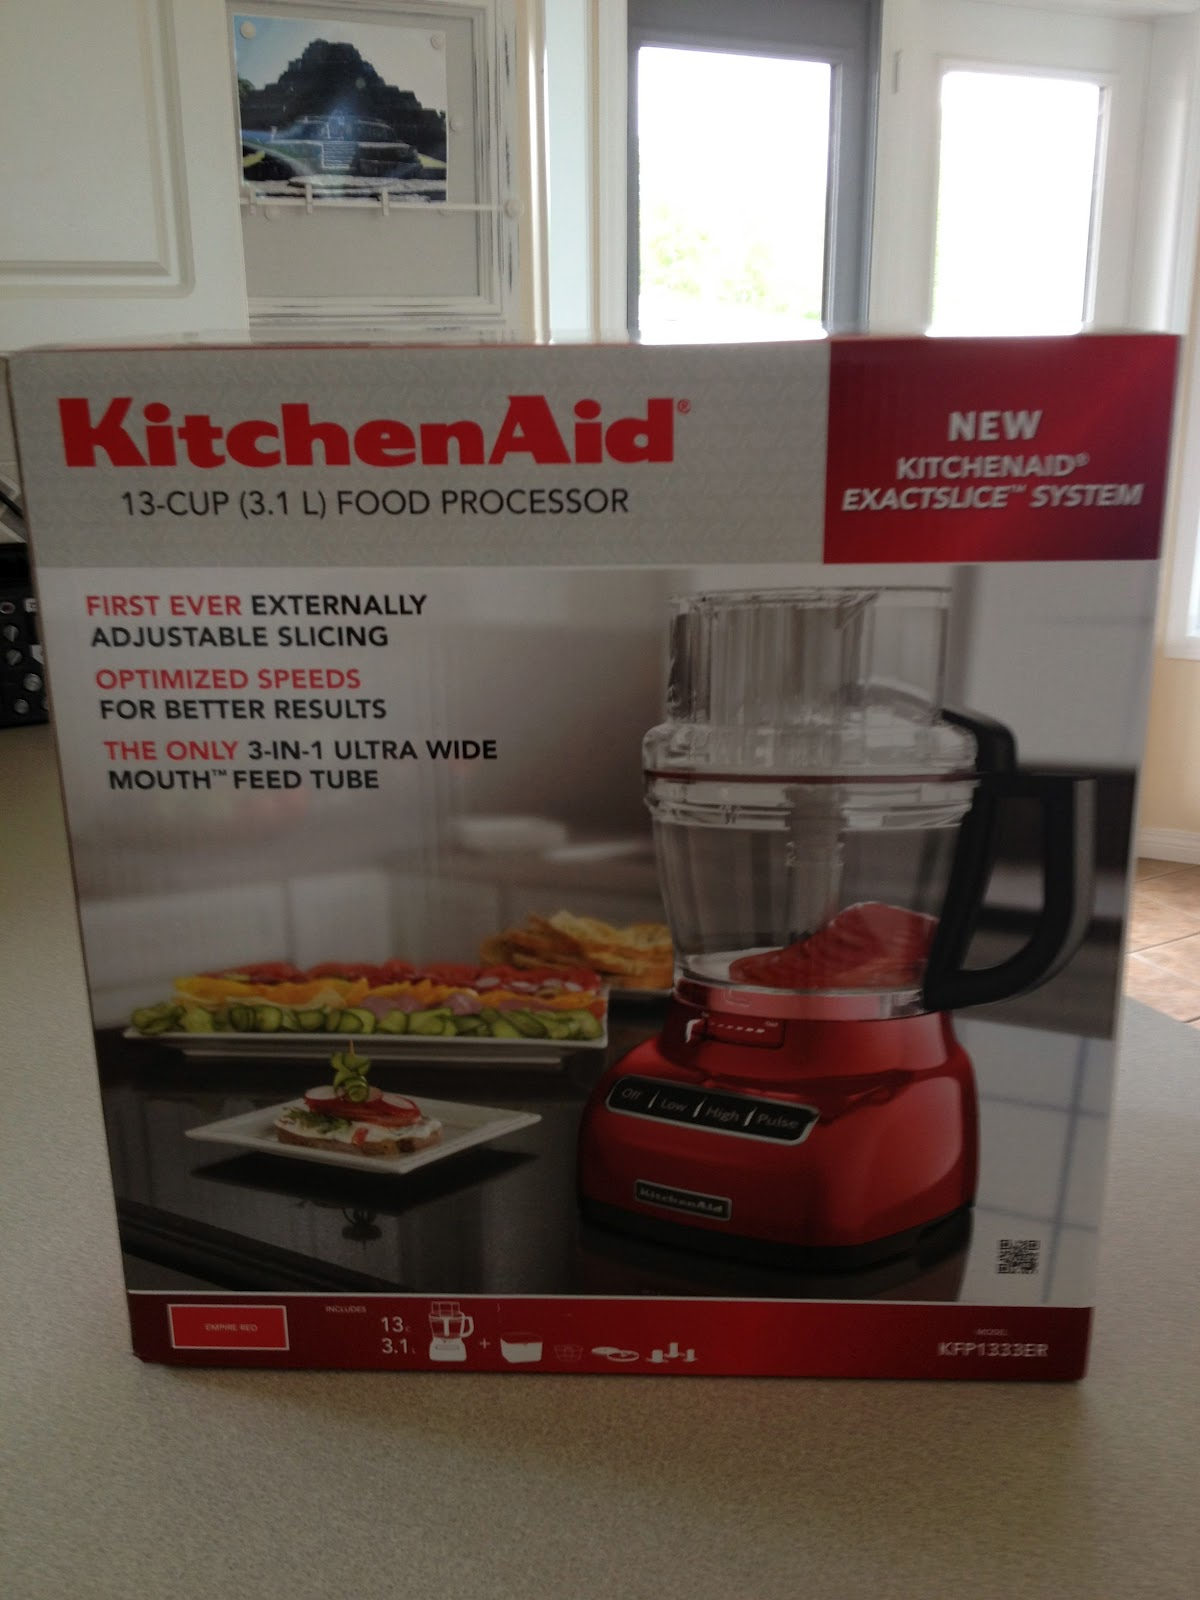 Cooking Illustrated: KitchenAid 13 Cup Food Processor With Exactslice System